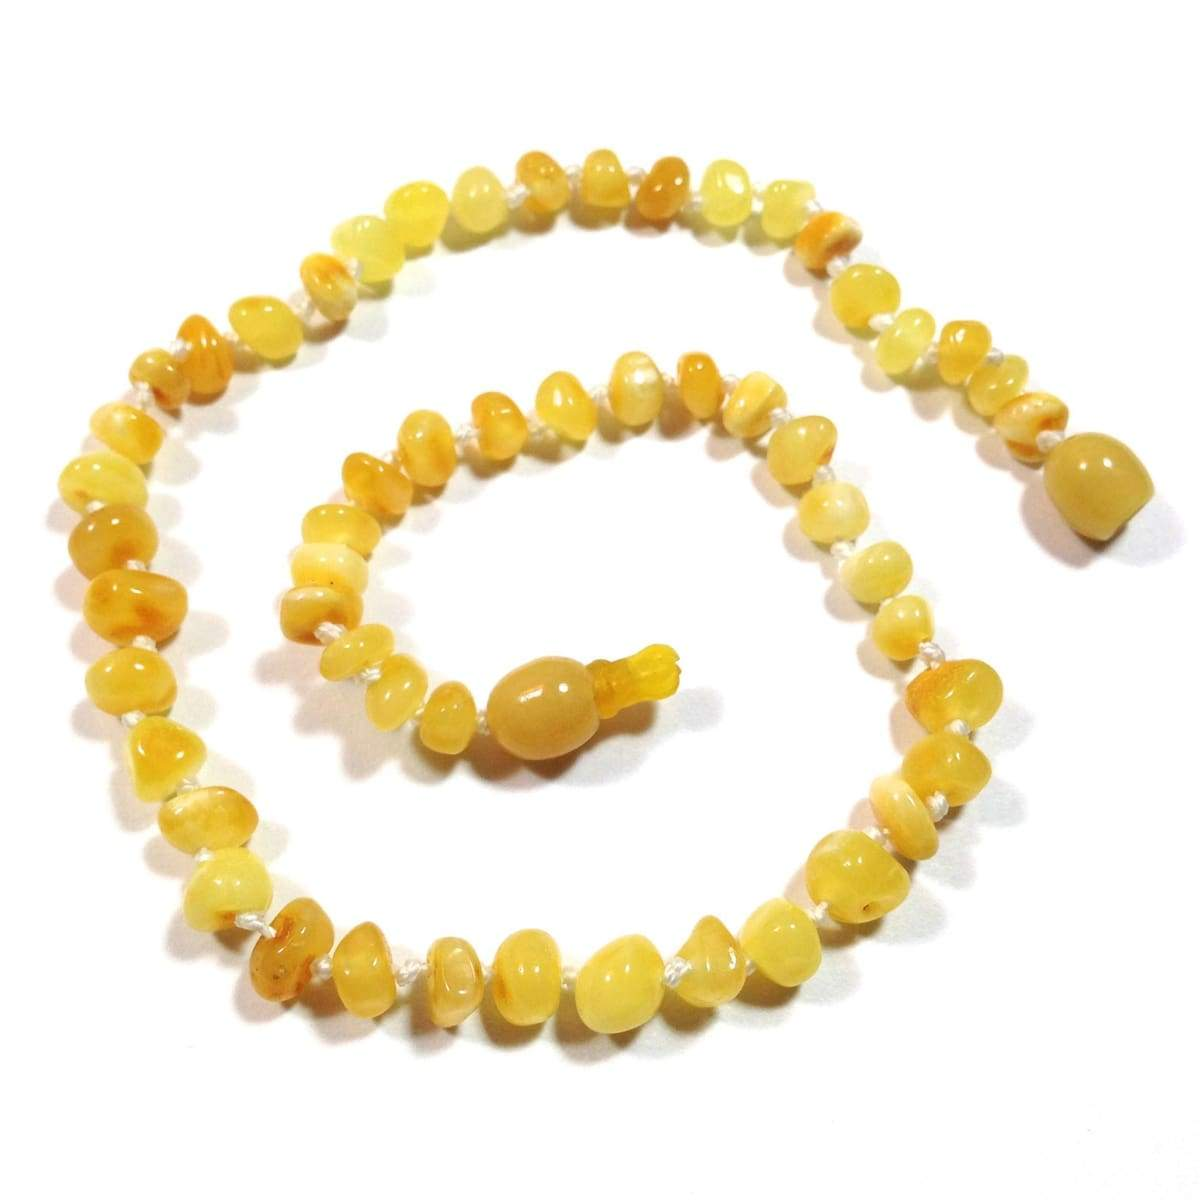 Baltic Amber Milk & Butter - 12 Necklace - Pop Clasp - Baltic Amber Jewelry